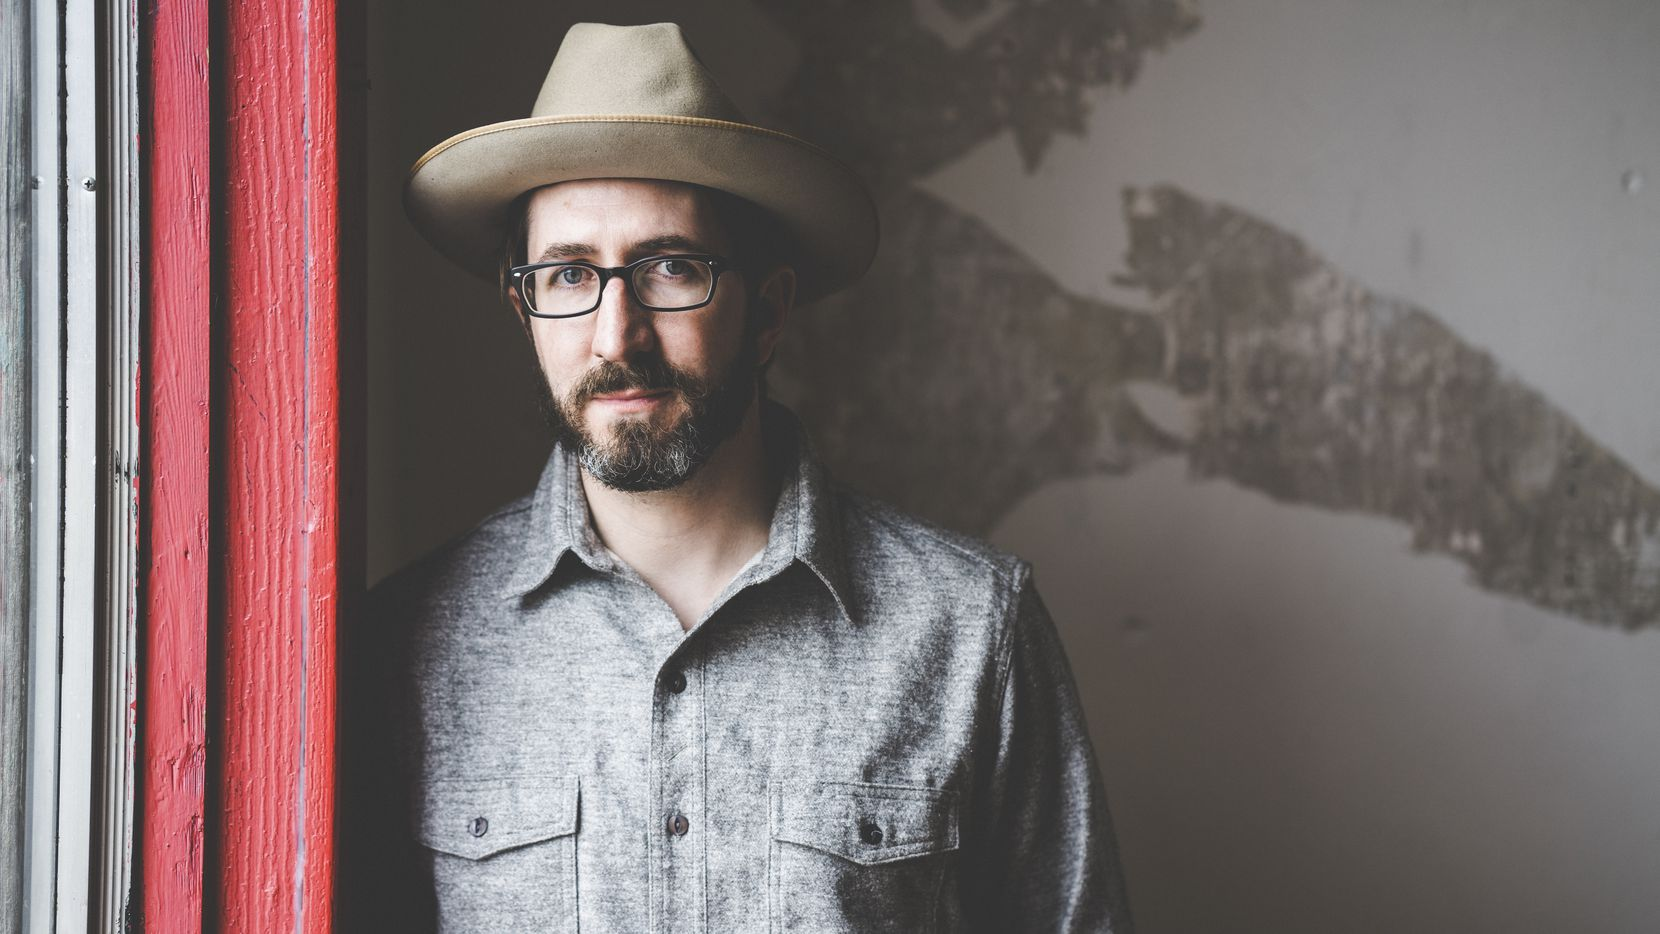 Dallas-based Christopher J. Norwood is set to release his fine new album 'Longshot' on Aug. 11.